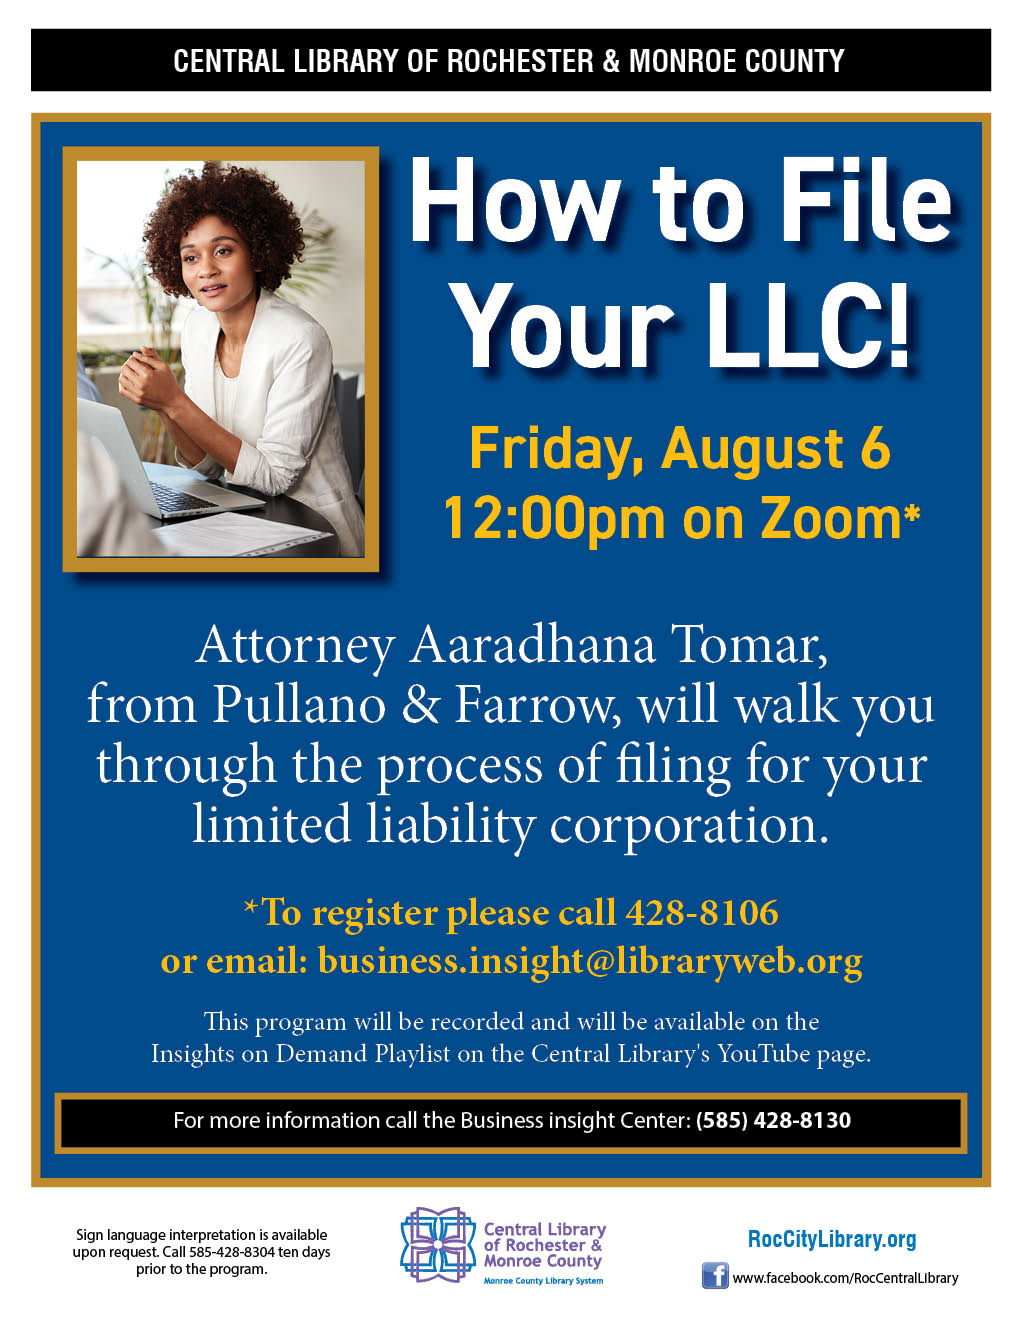 How to File for Your LLC